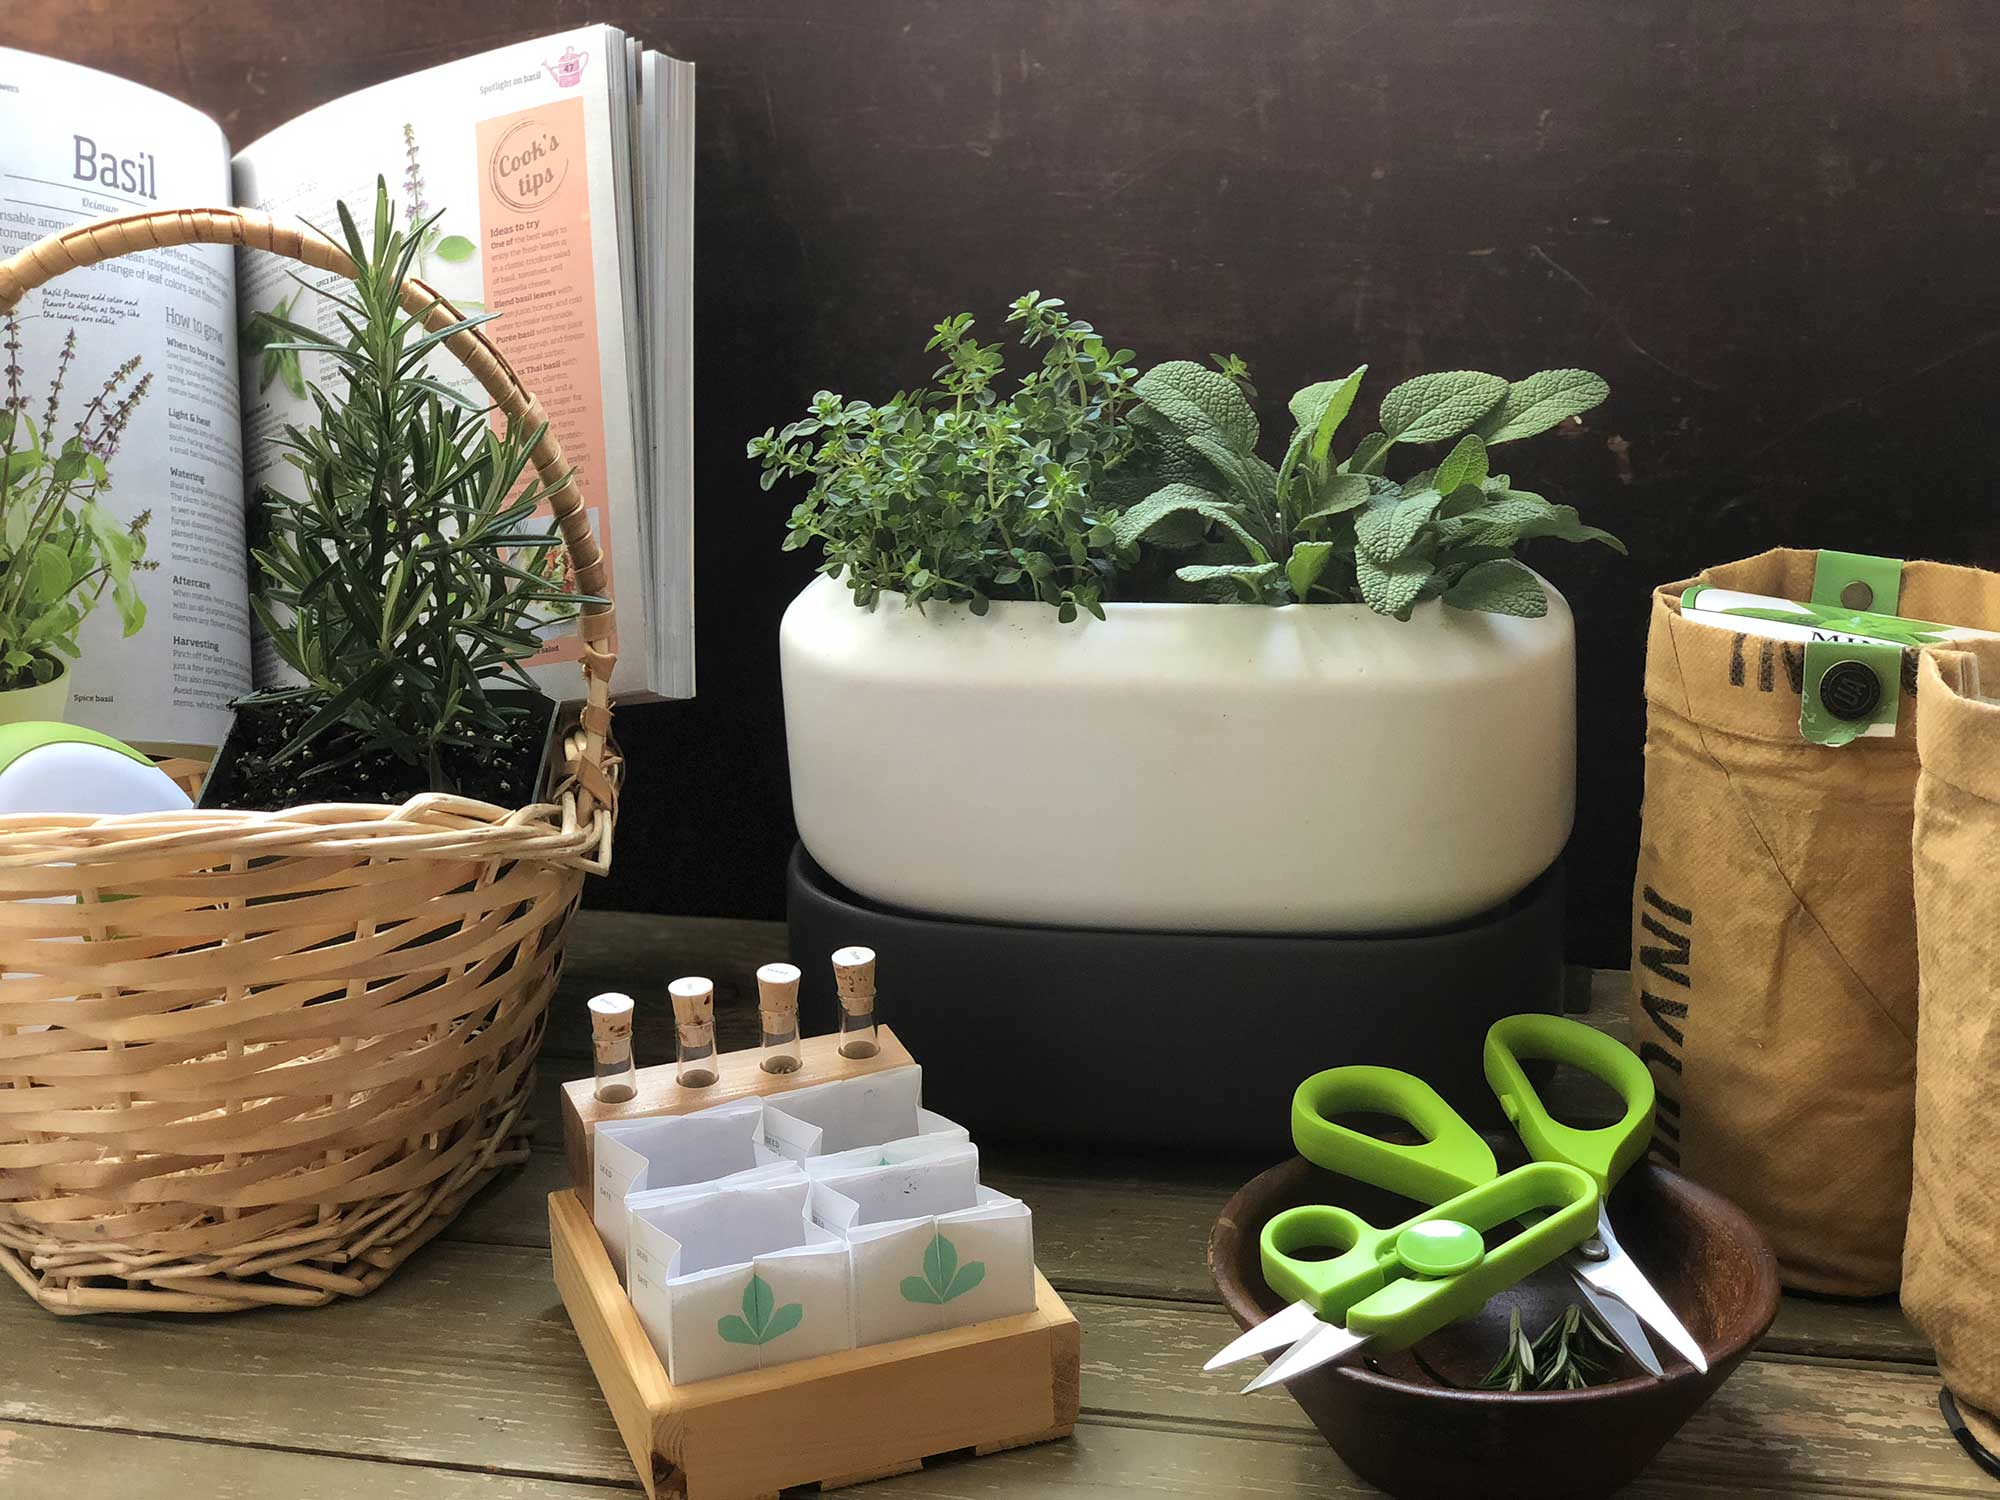 These Indoor Herb Gardening Kits Will Completely Change Your Summer Meals